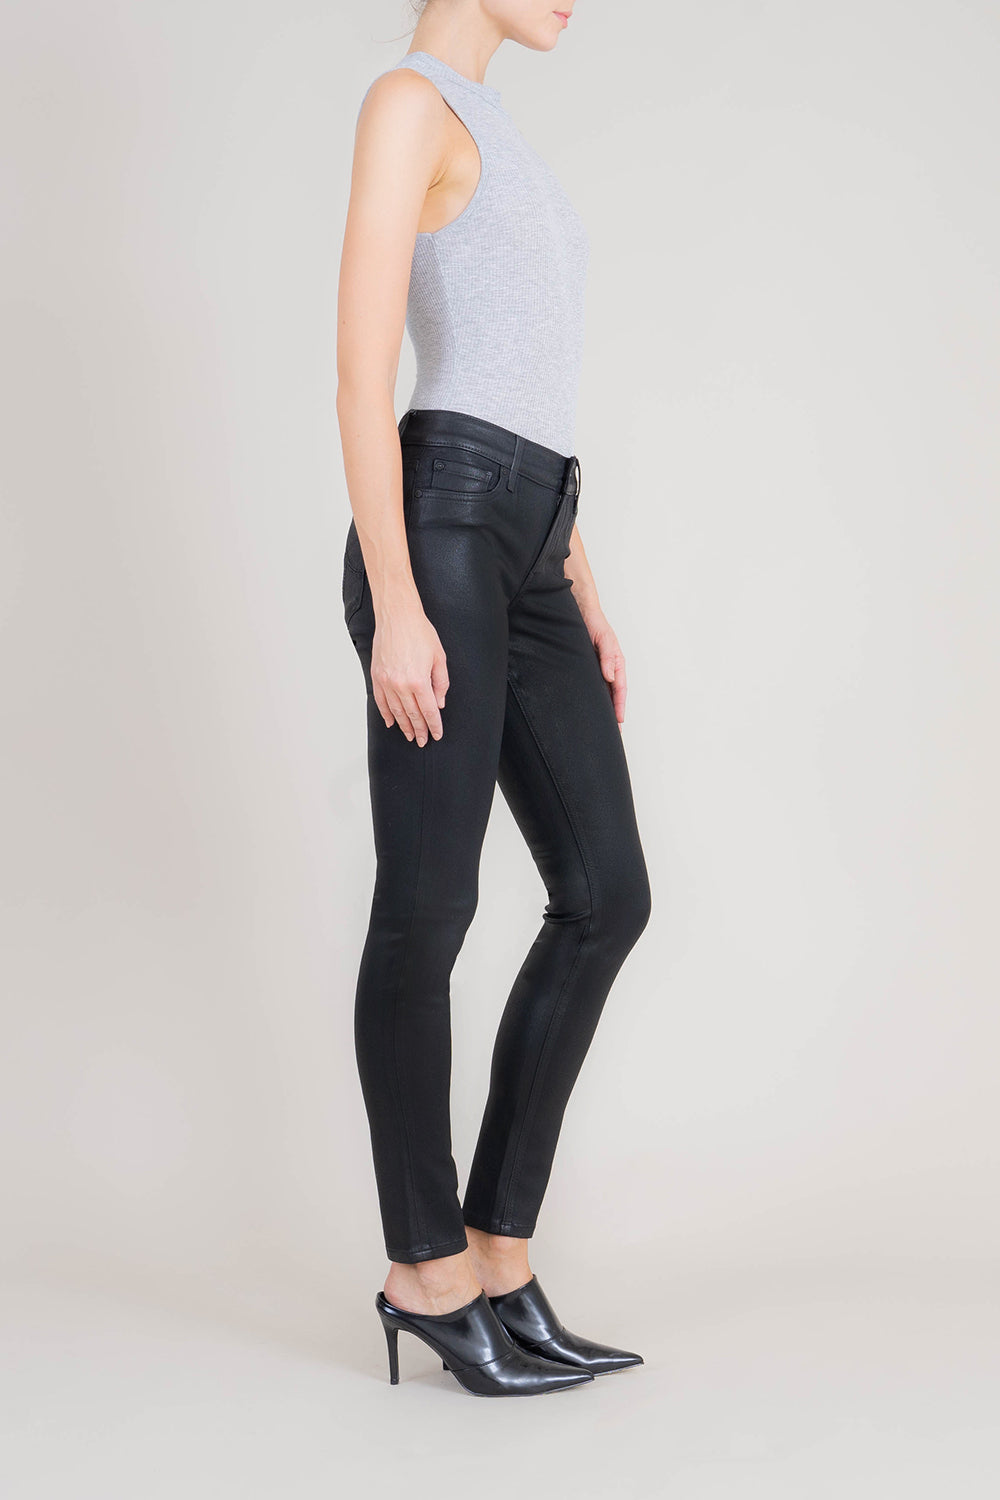 Krissy Coated Faux Leather Skinny